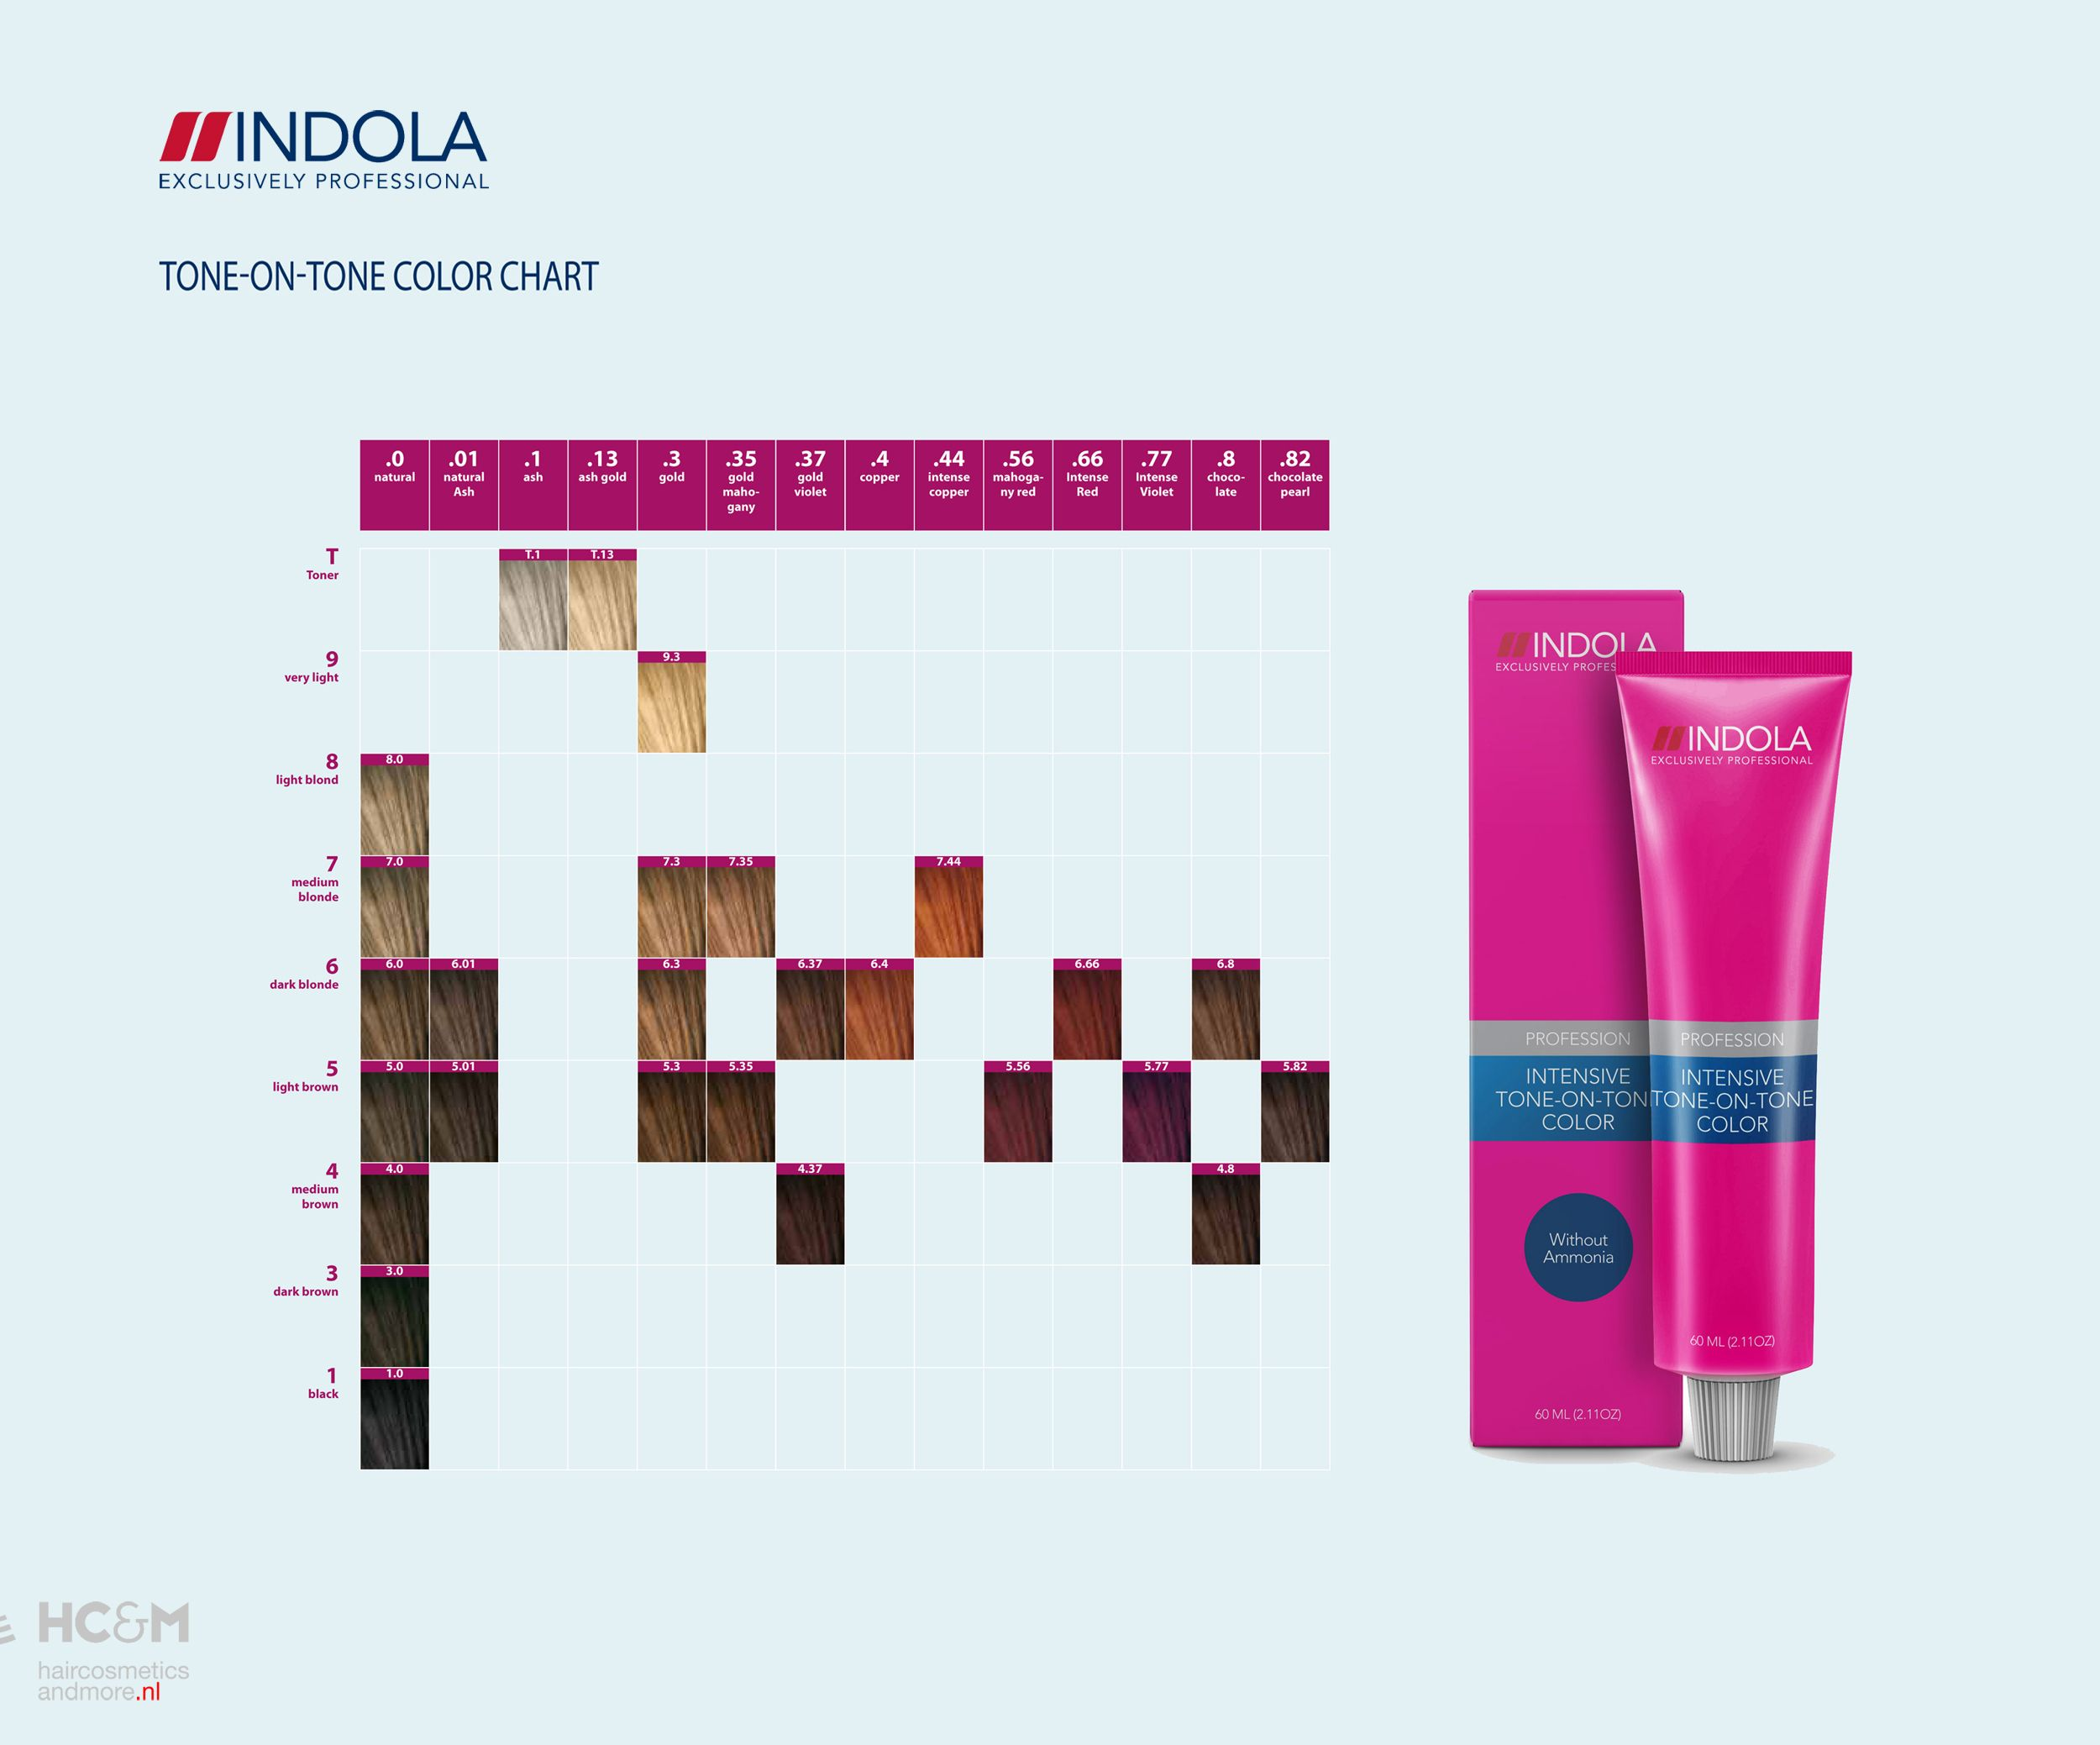 Lovely Tone On Tone Color Part - 14: Indola Intensive Tone-on-Tone Color Chart.